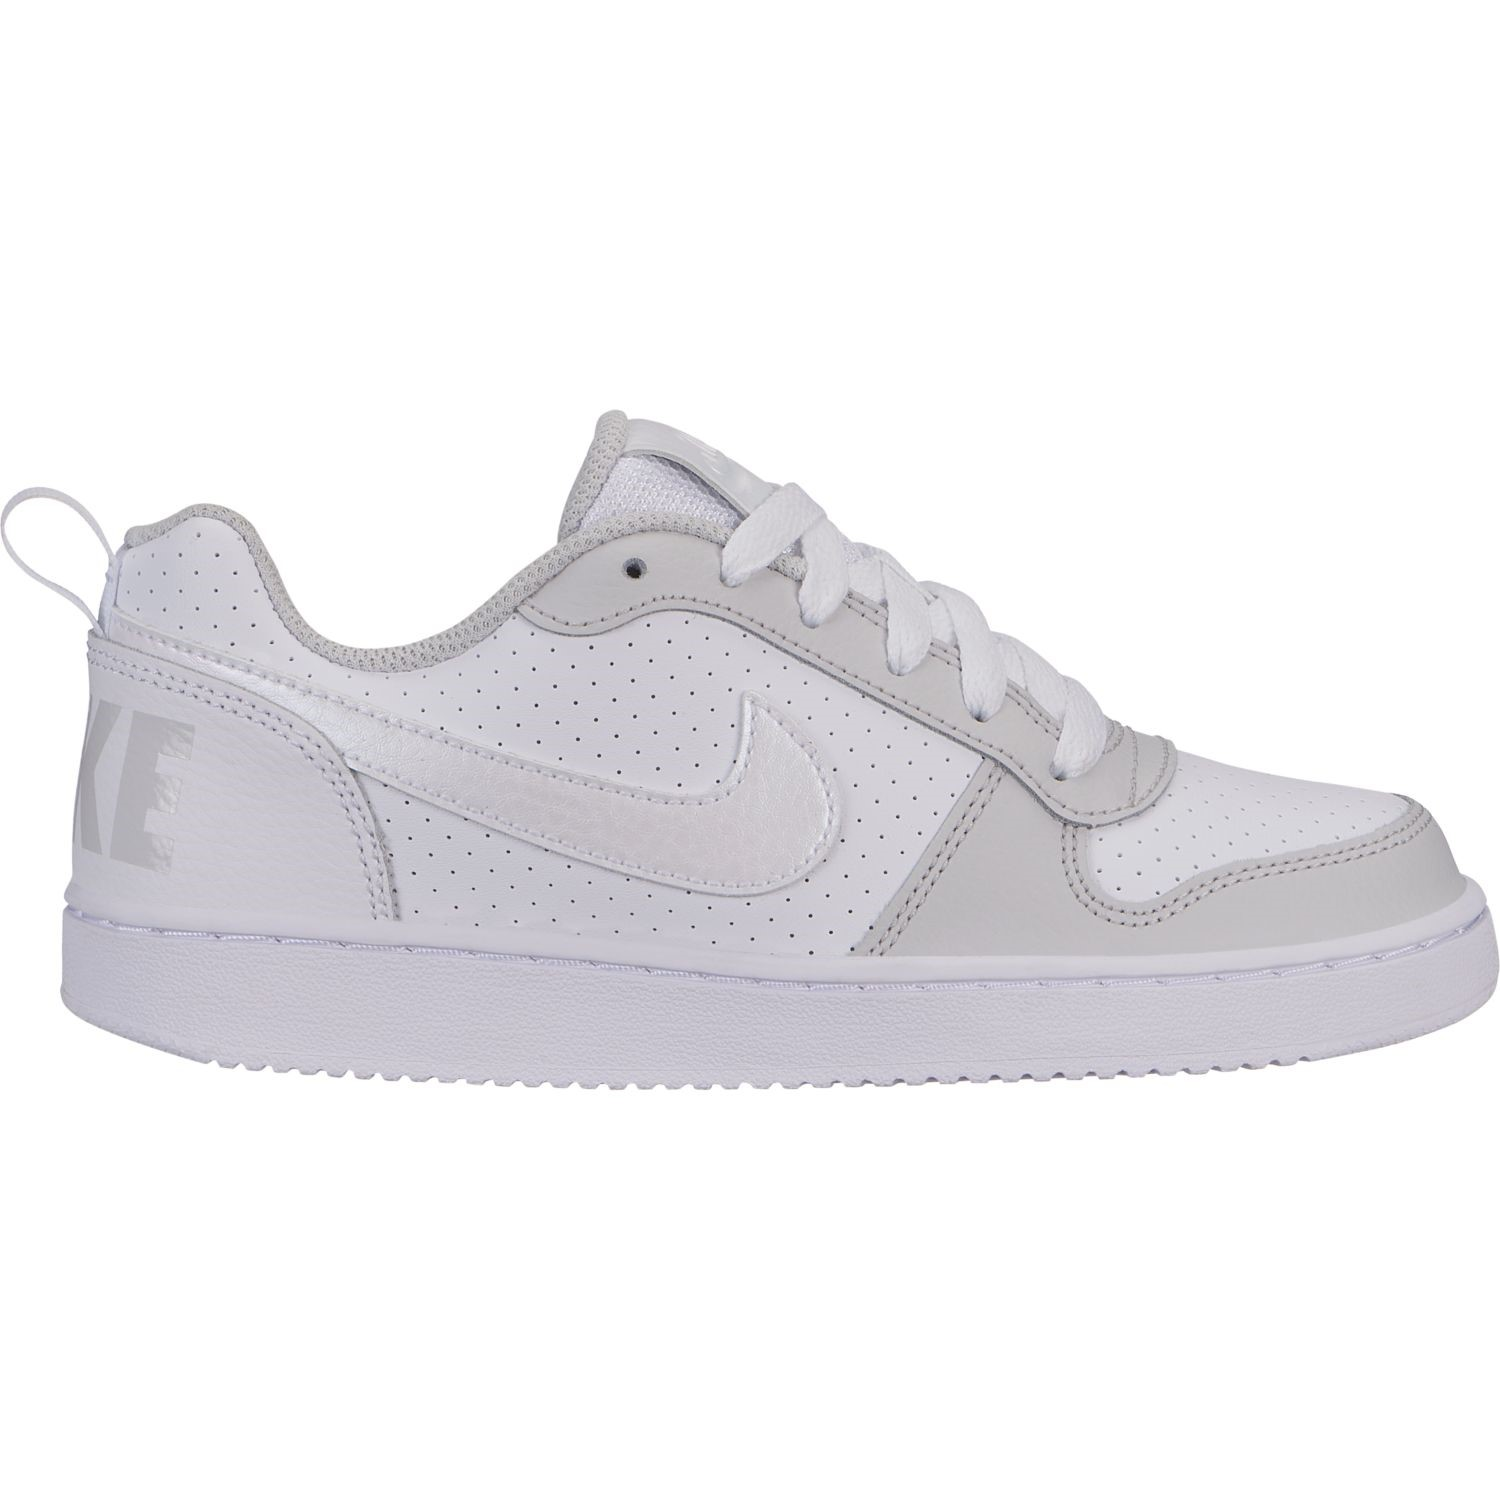 innovative design a2d7f 5d983 Nike Court Borough Low GS - Kids Sneakers - White Vast Grey